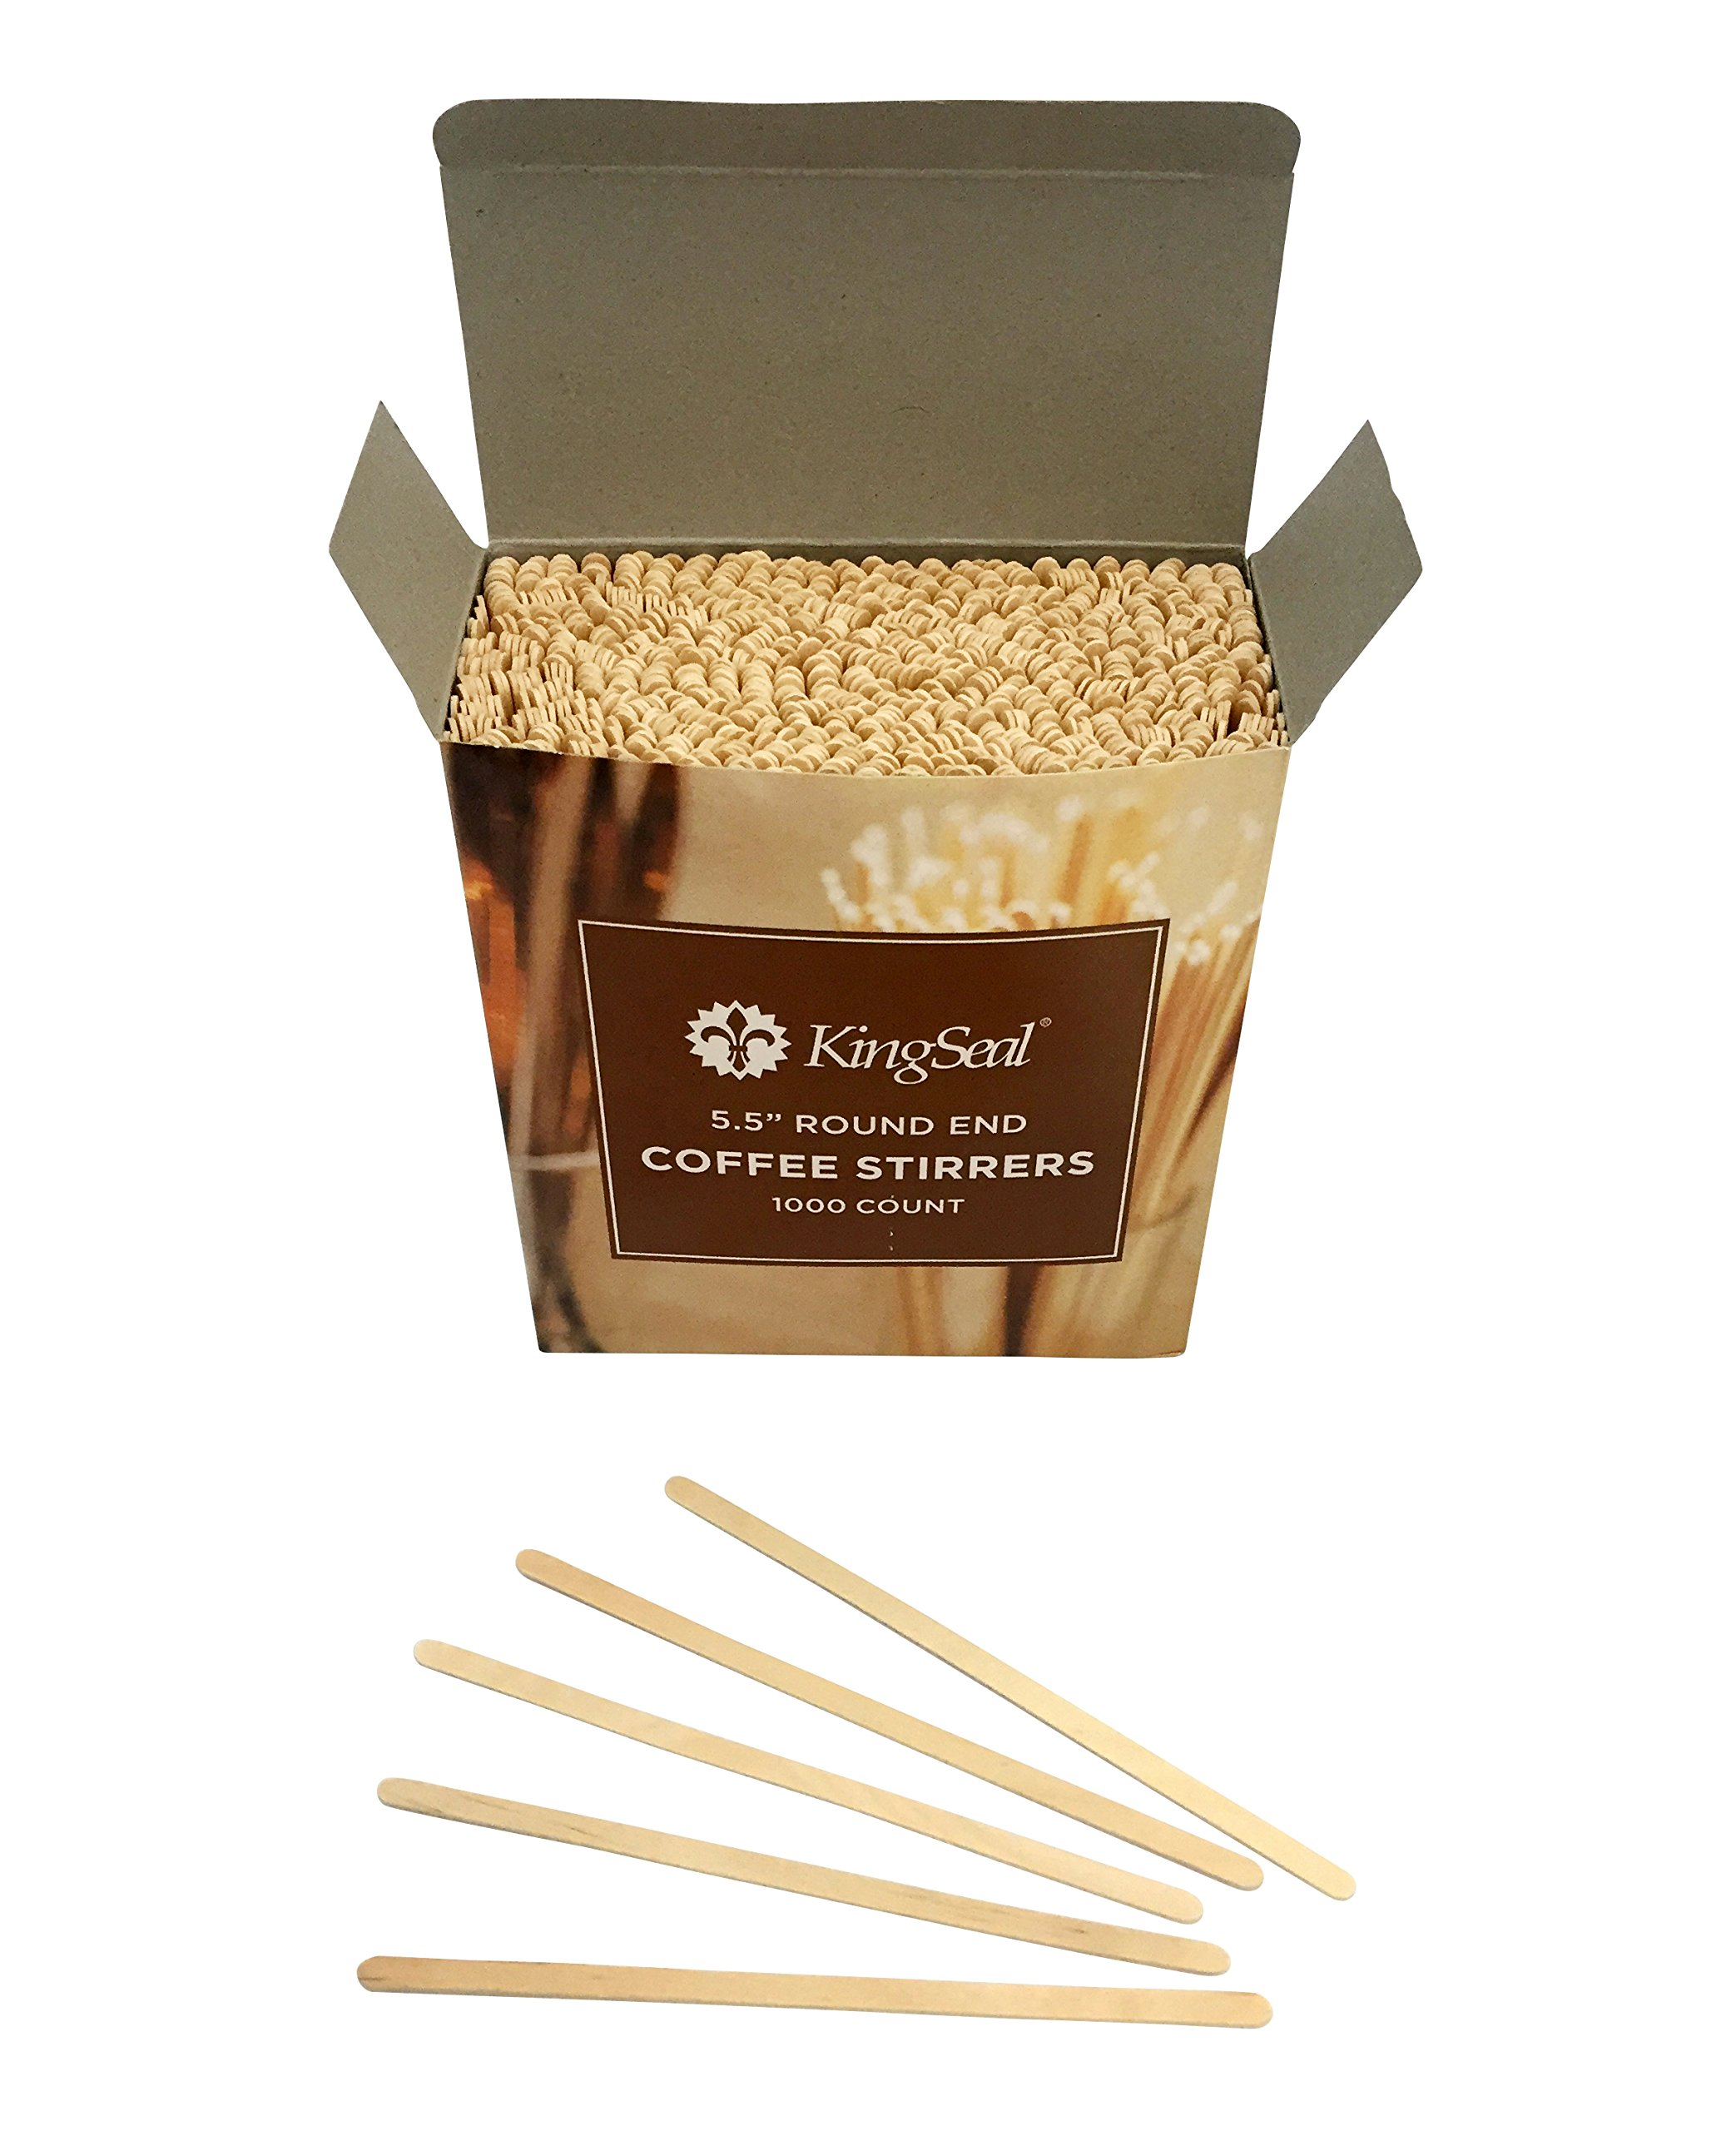 KingSeal Natural Birch Wood Coffee Beverage Stirrers - 5.5 Inches, Round End, 10 Packs of 1000 each per Case by KingSeal (Image #4)